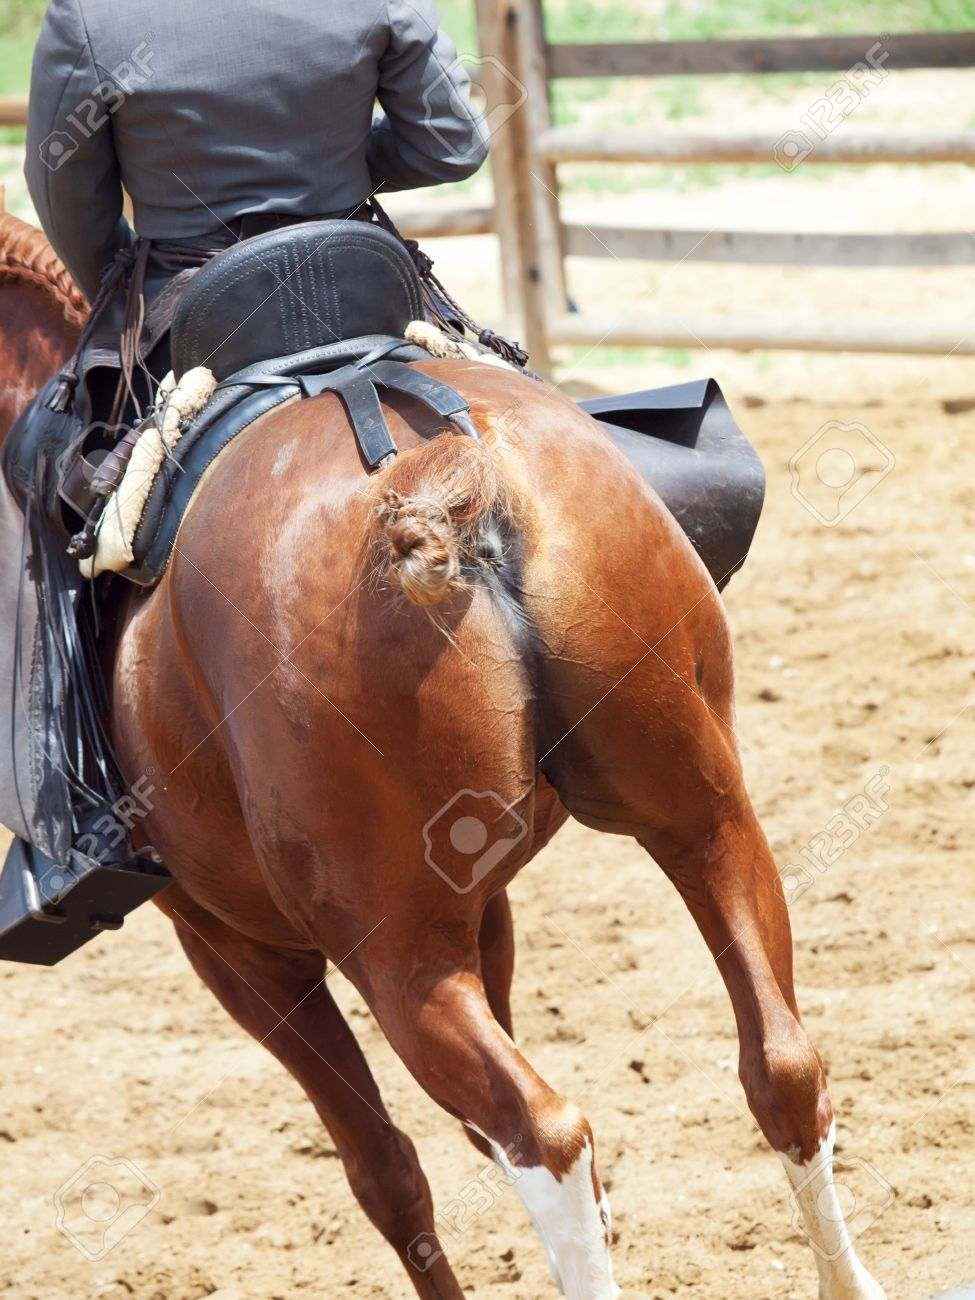 cowbow riding at horse looking behind sunny day Stock Photo - 13872031